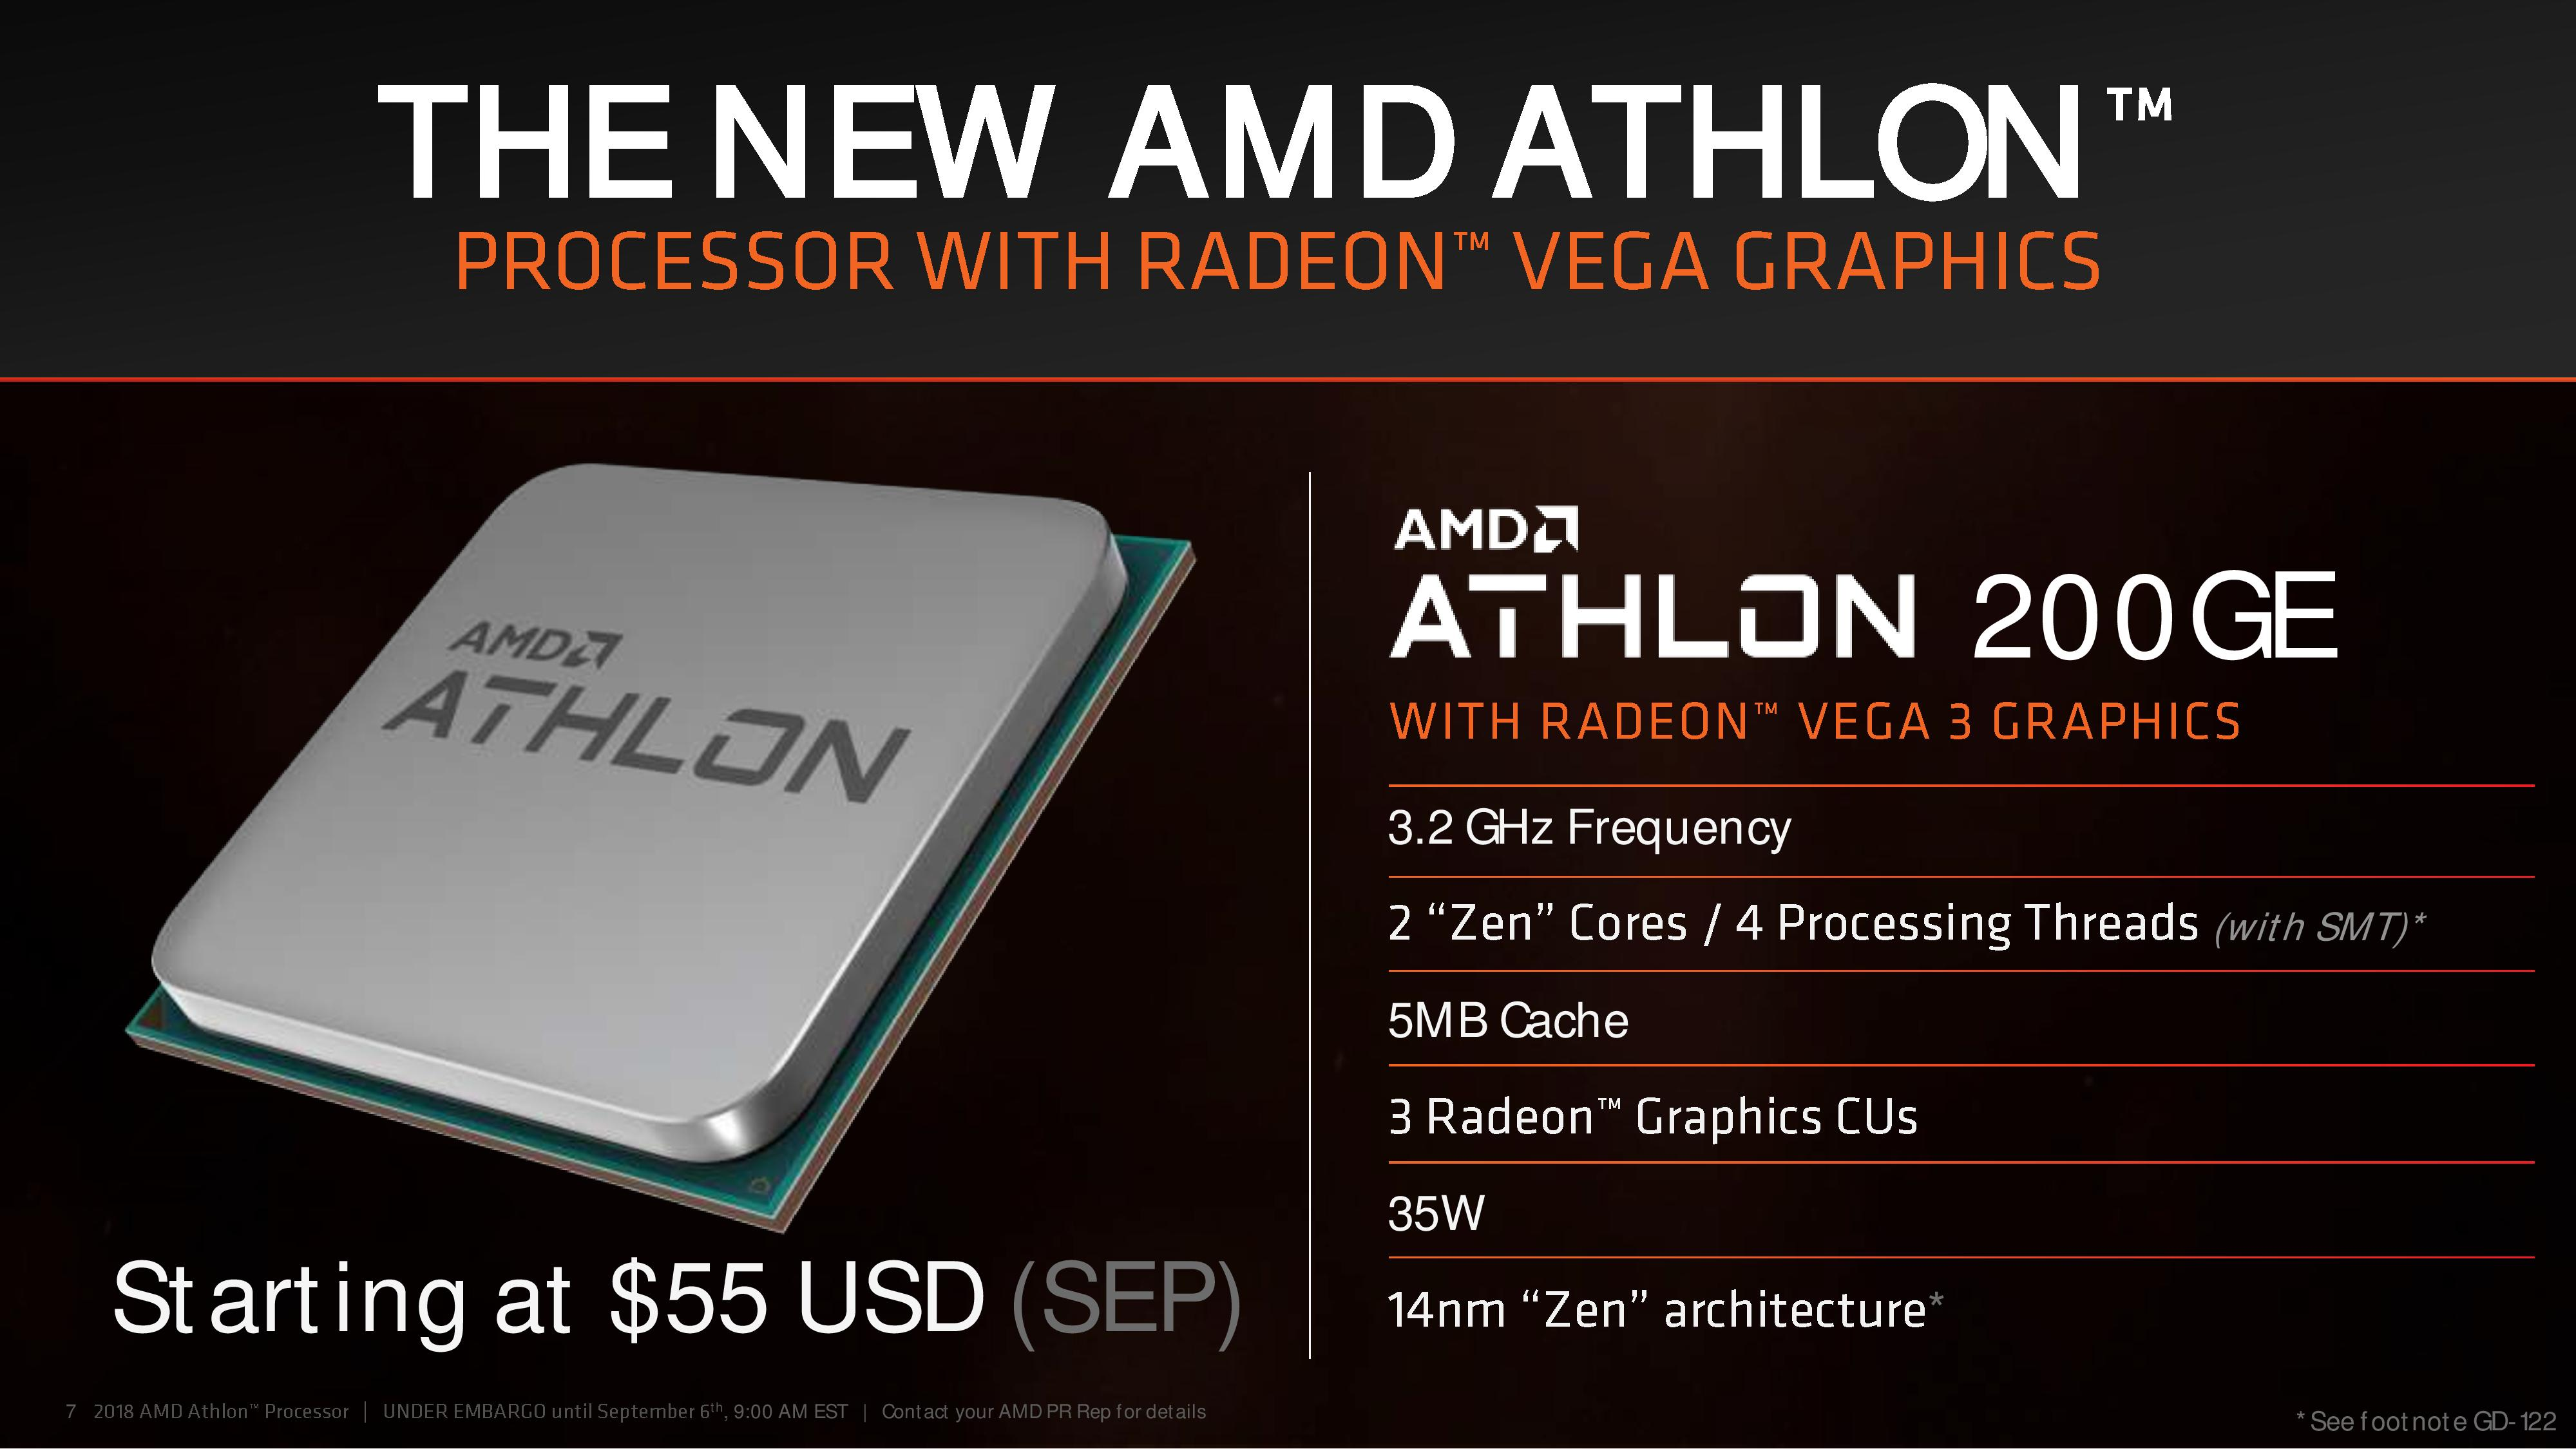 Amds Athlon 200ge Processors Now Available Amd Ryzen 3 Raven Ridge 2200g 35ghz Up To 37ghz Cache 4mb 65w Am4 Notably Even With The Low Price Isnt Holding Back On Feature Support Here Since Cpu Is Drop In Compatible 300 And 400 Series